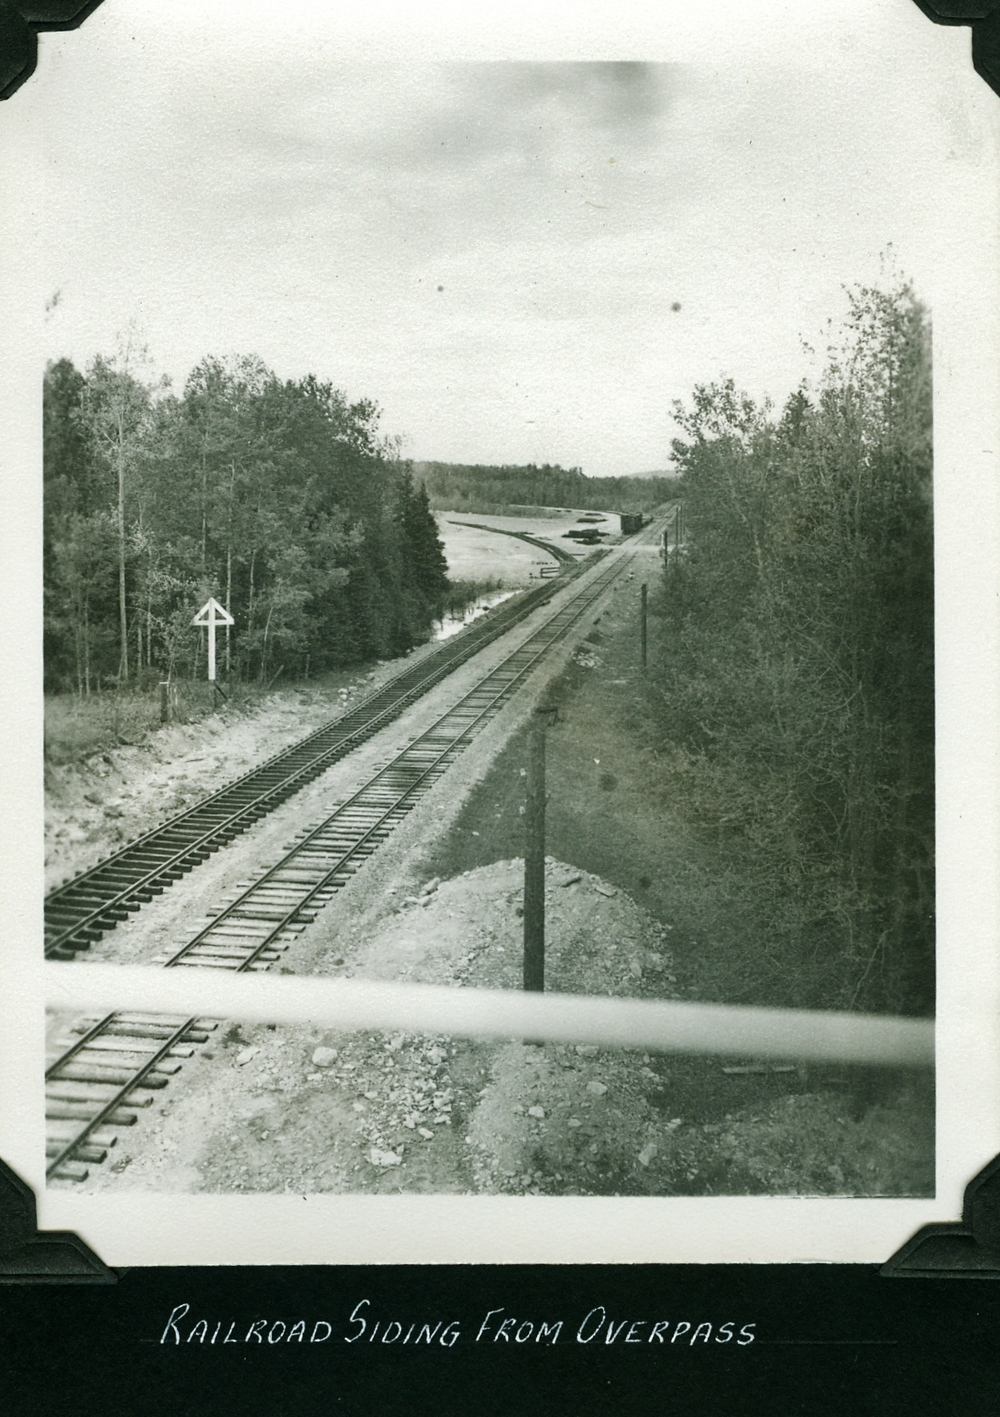 Railroad siding from Overpass - Marmora Mine